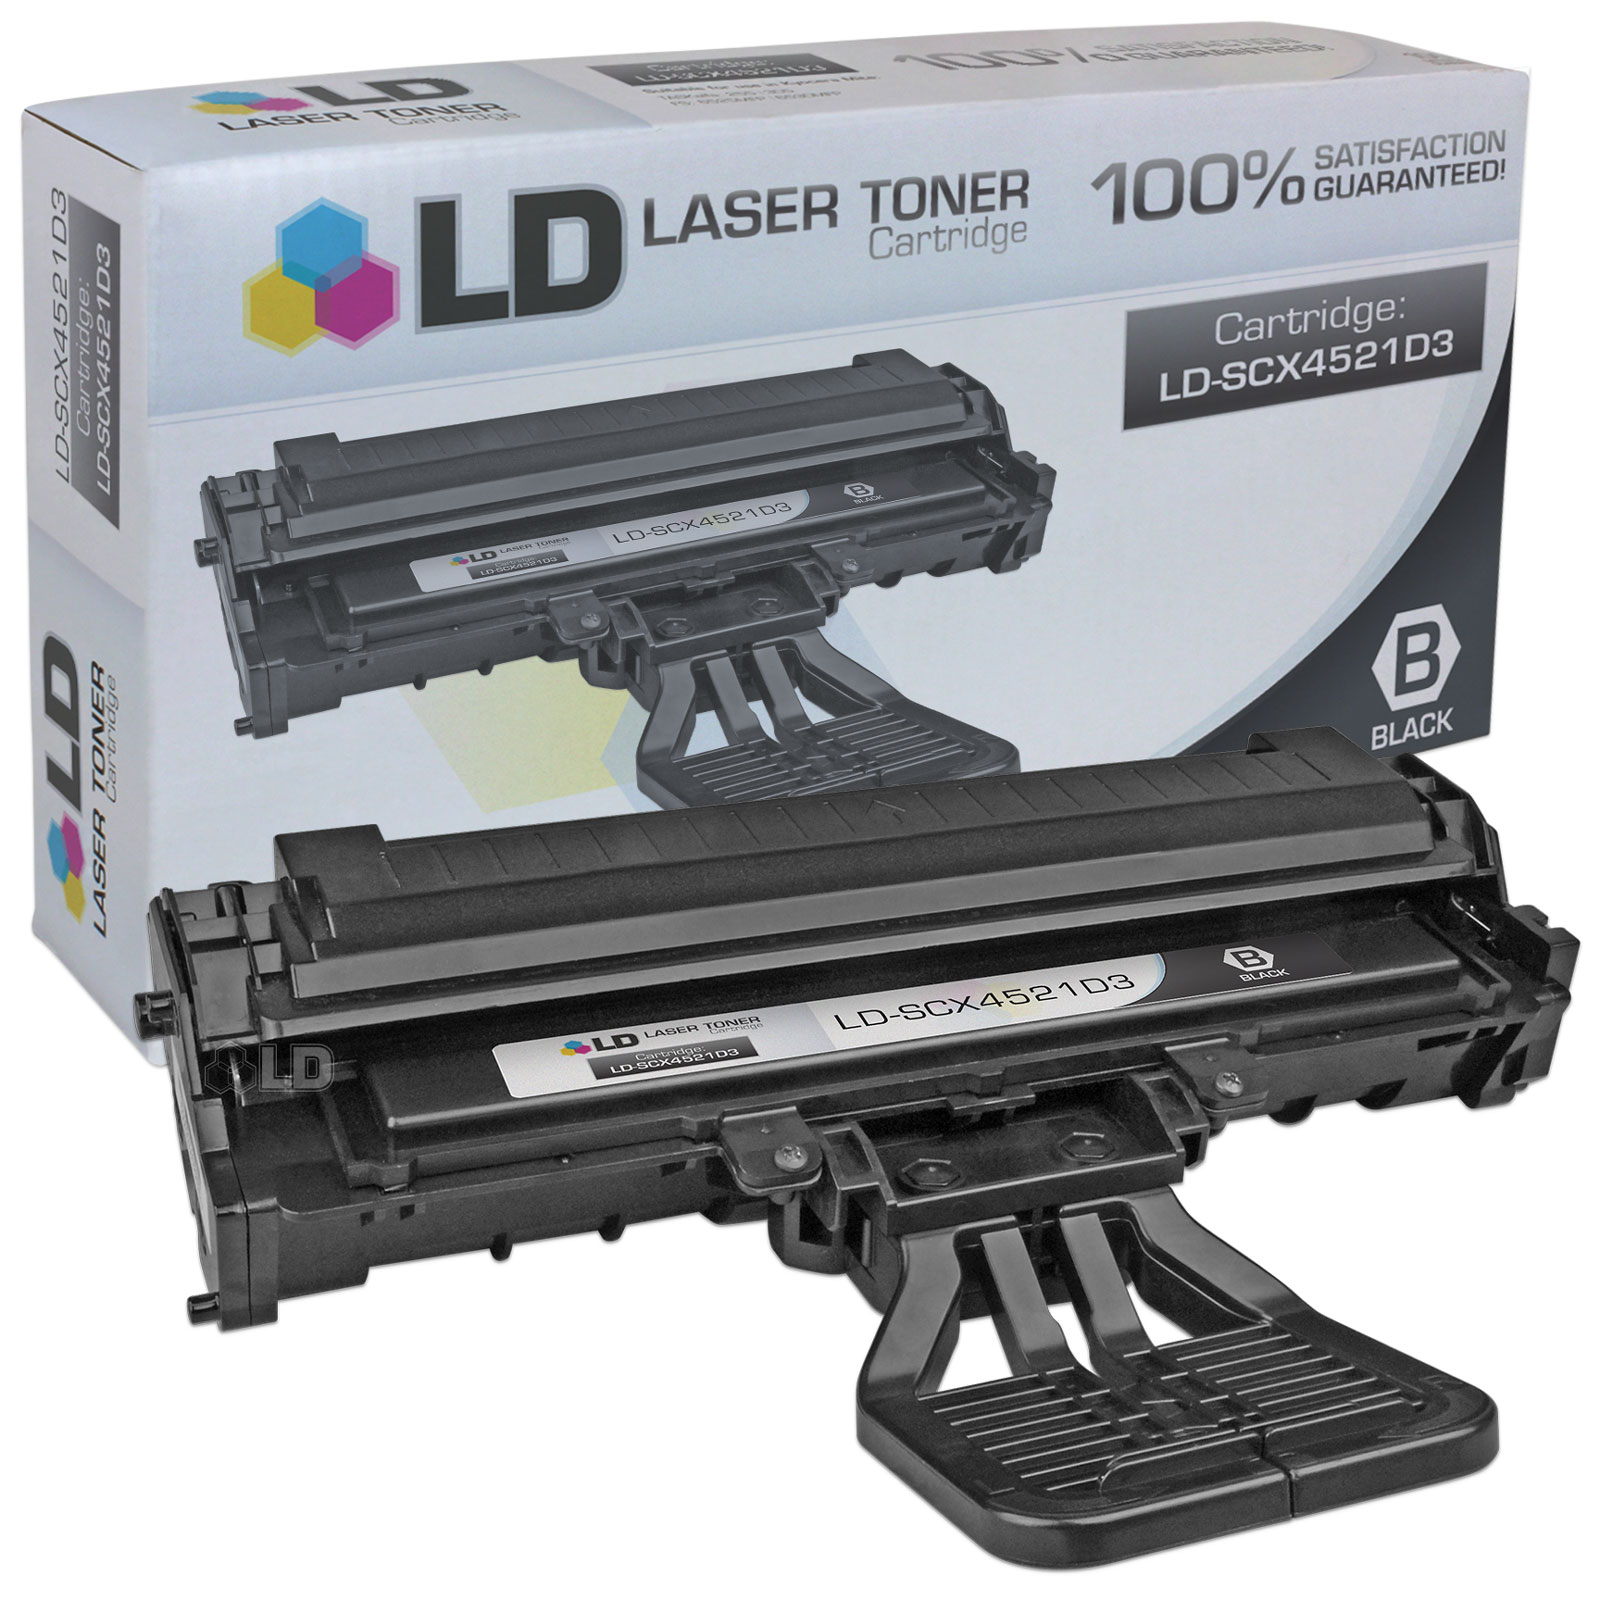 LD Compatible Replacement for Samsung SCX-4521D3 Black Laser Toner Cartridge for use in Samsung SCX-4321, SCX-4521,